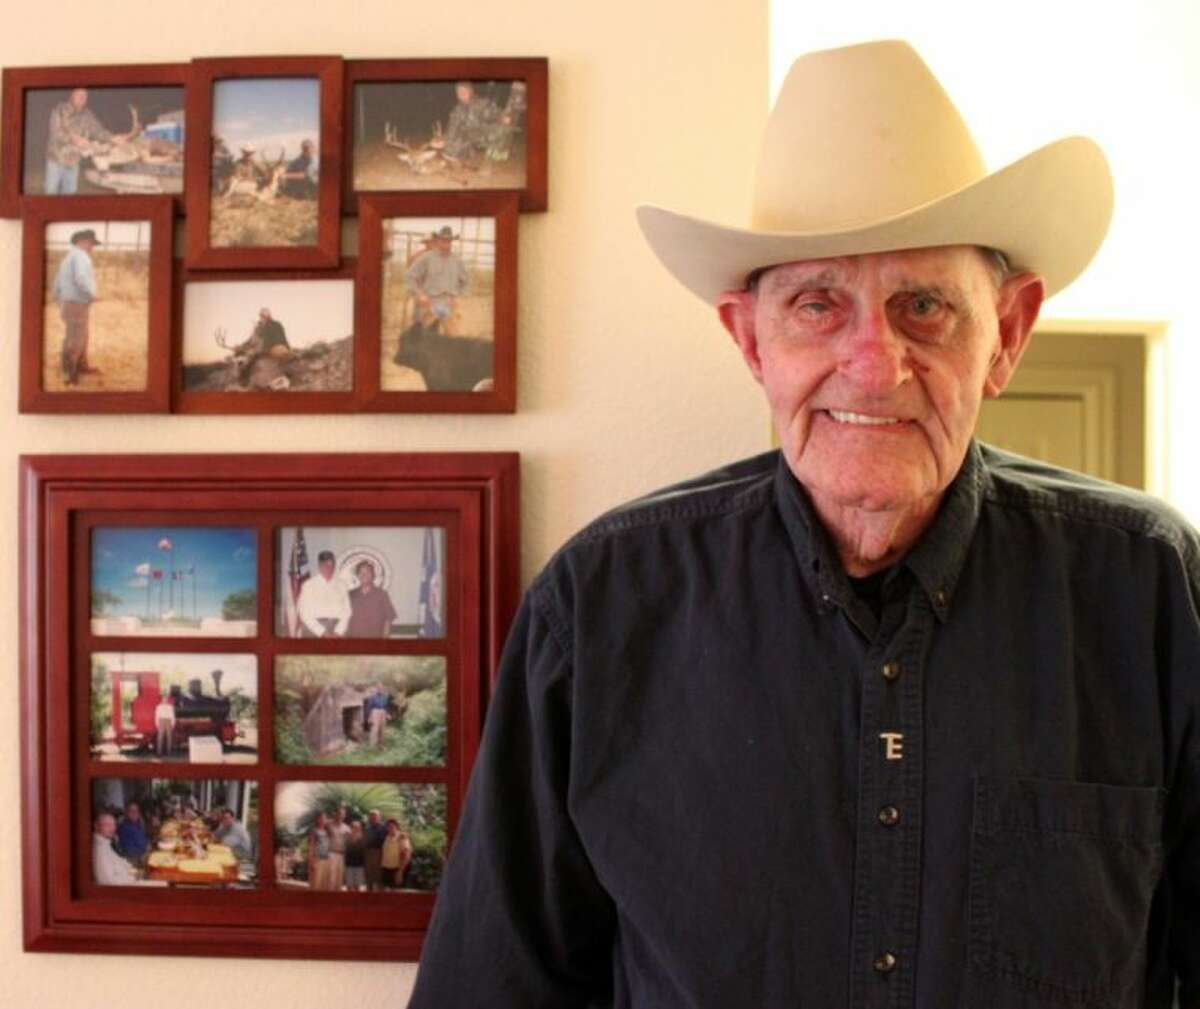 Tom Erskine at Parkway Place in front of pictures from deer hunting and his visit to Saipan in 2002.